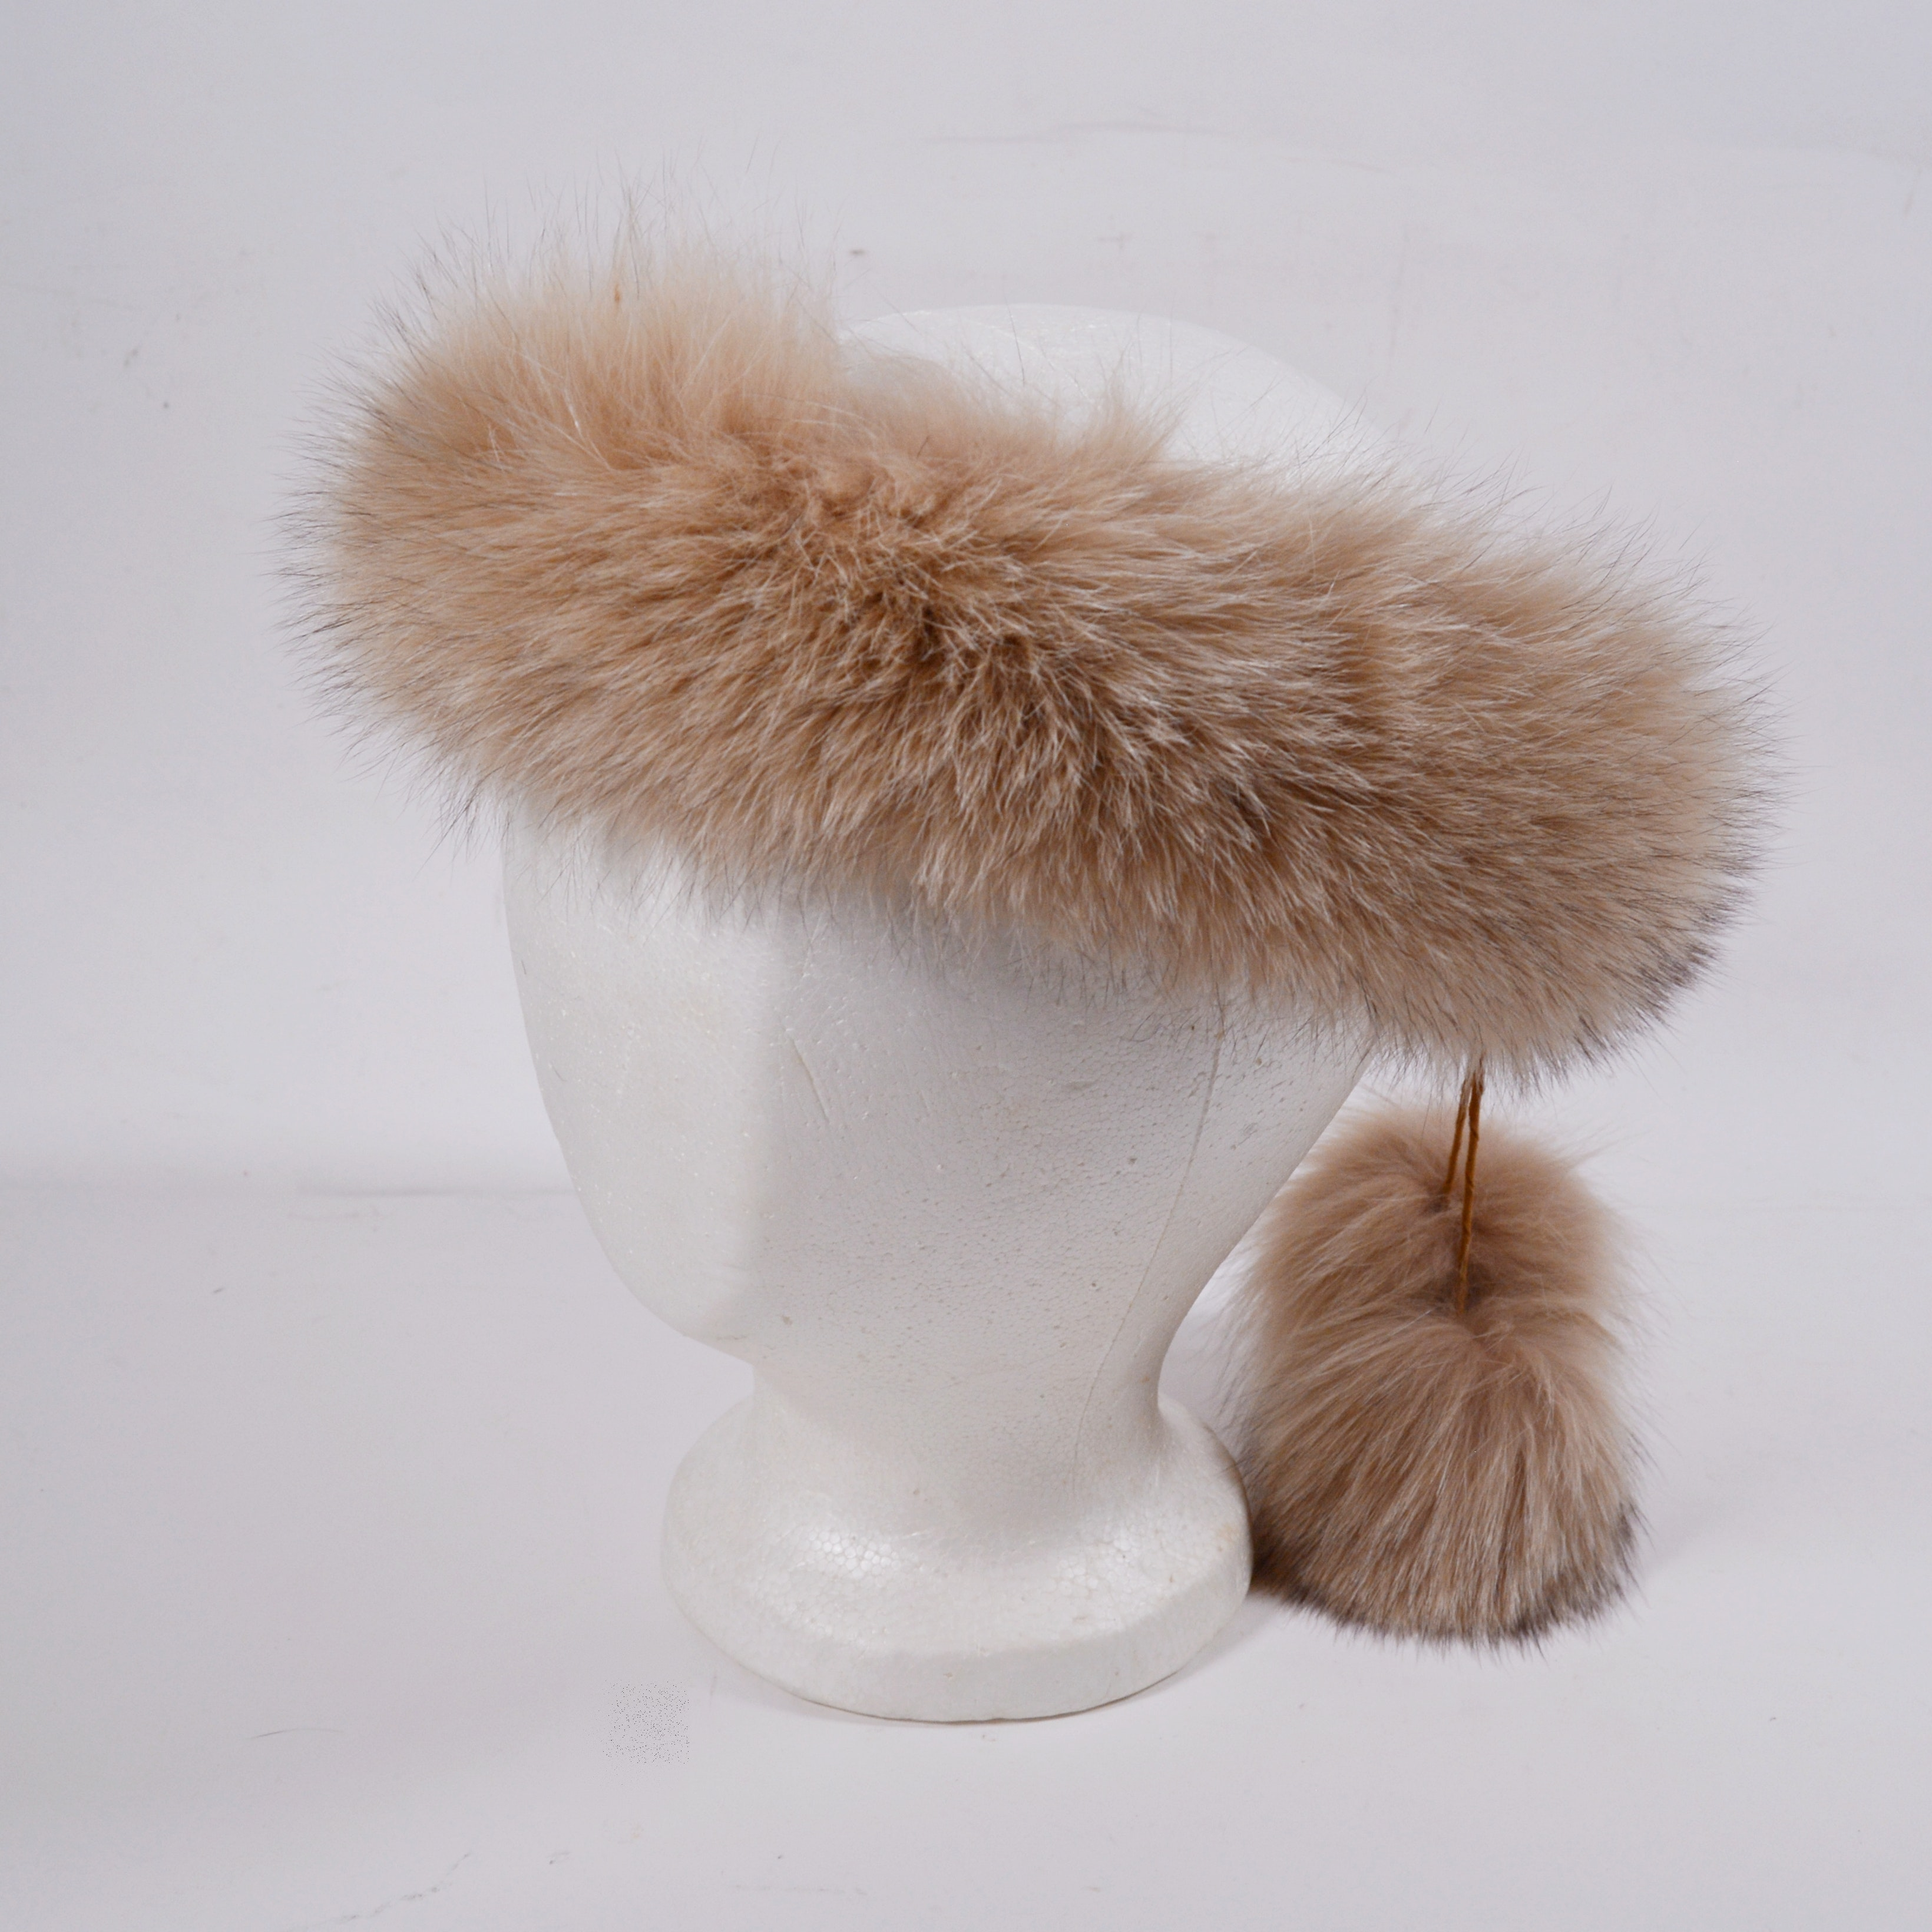 Women's Fox Fur Headband with Pom Poms